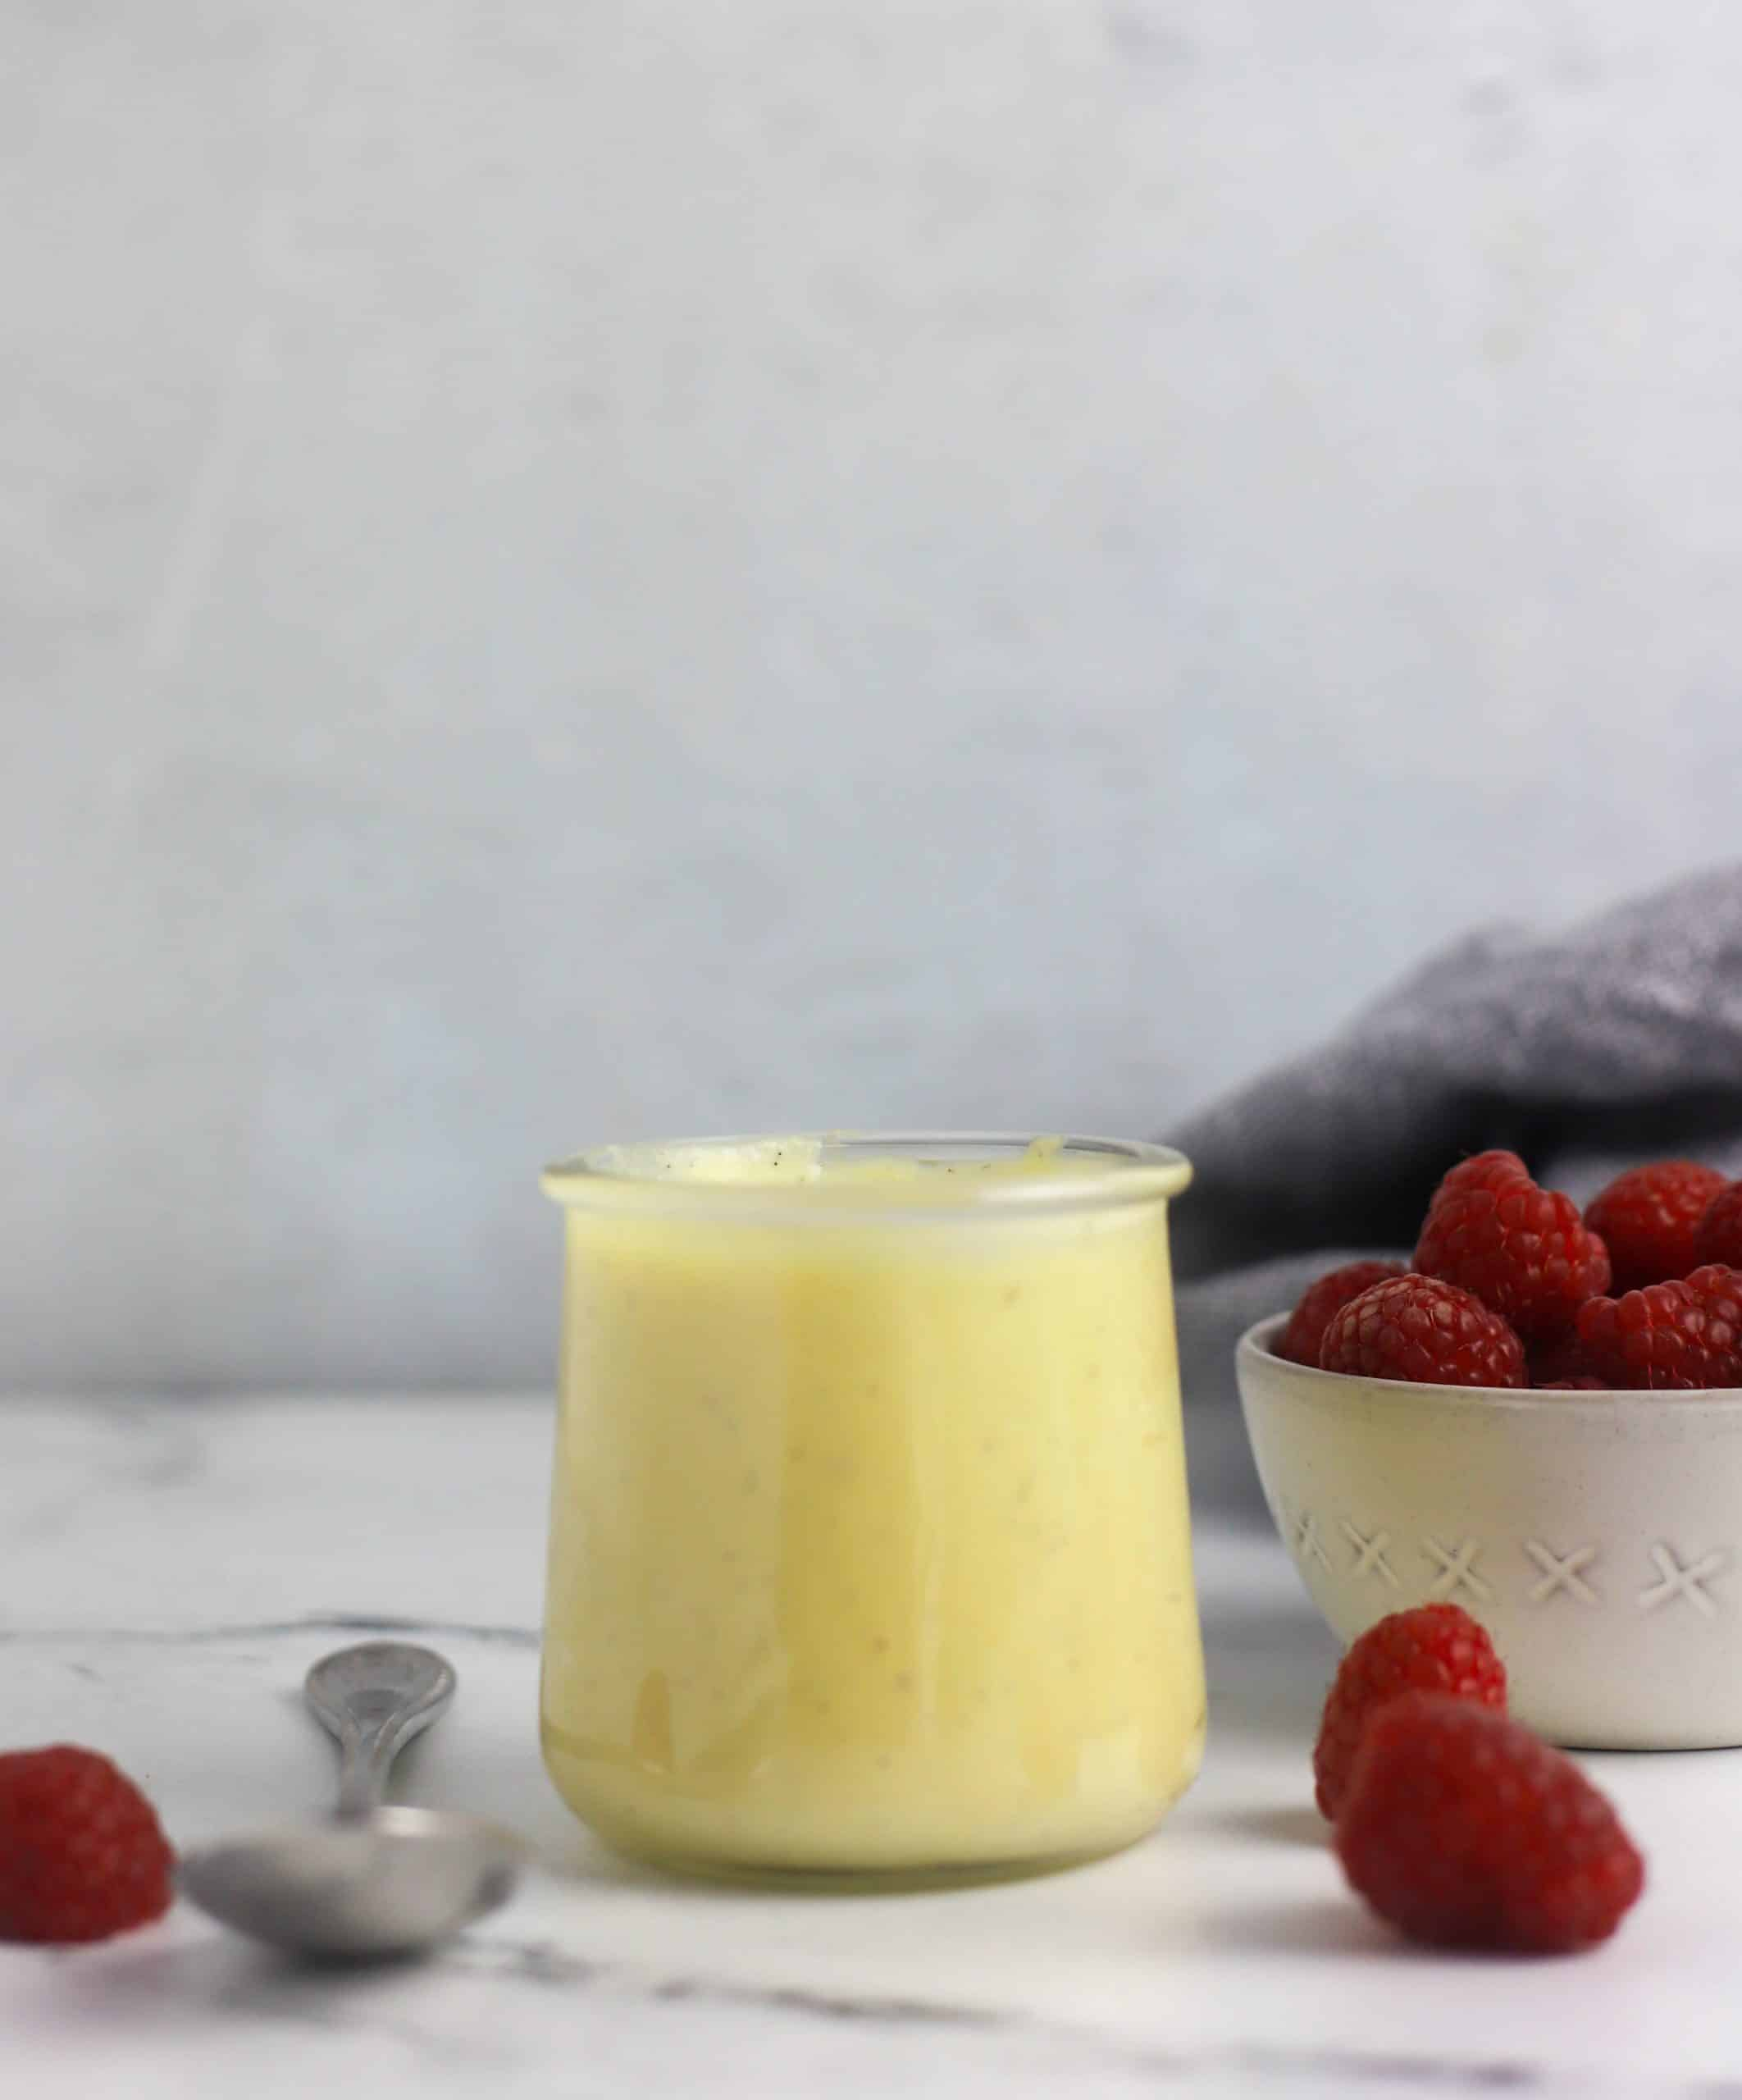 vanilla custard sauce and bowl of raspberries